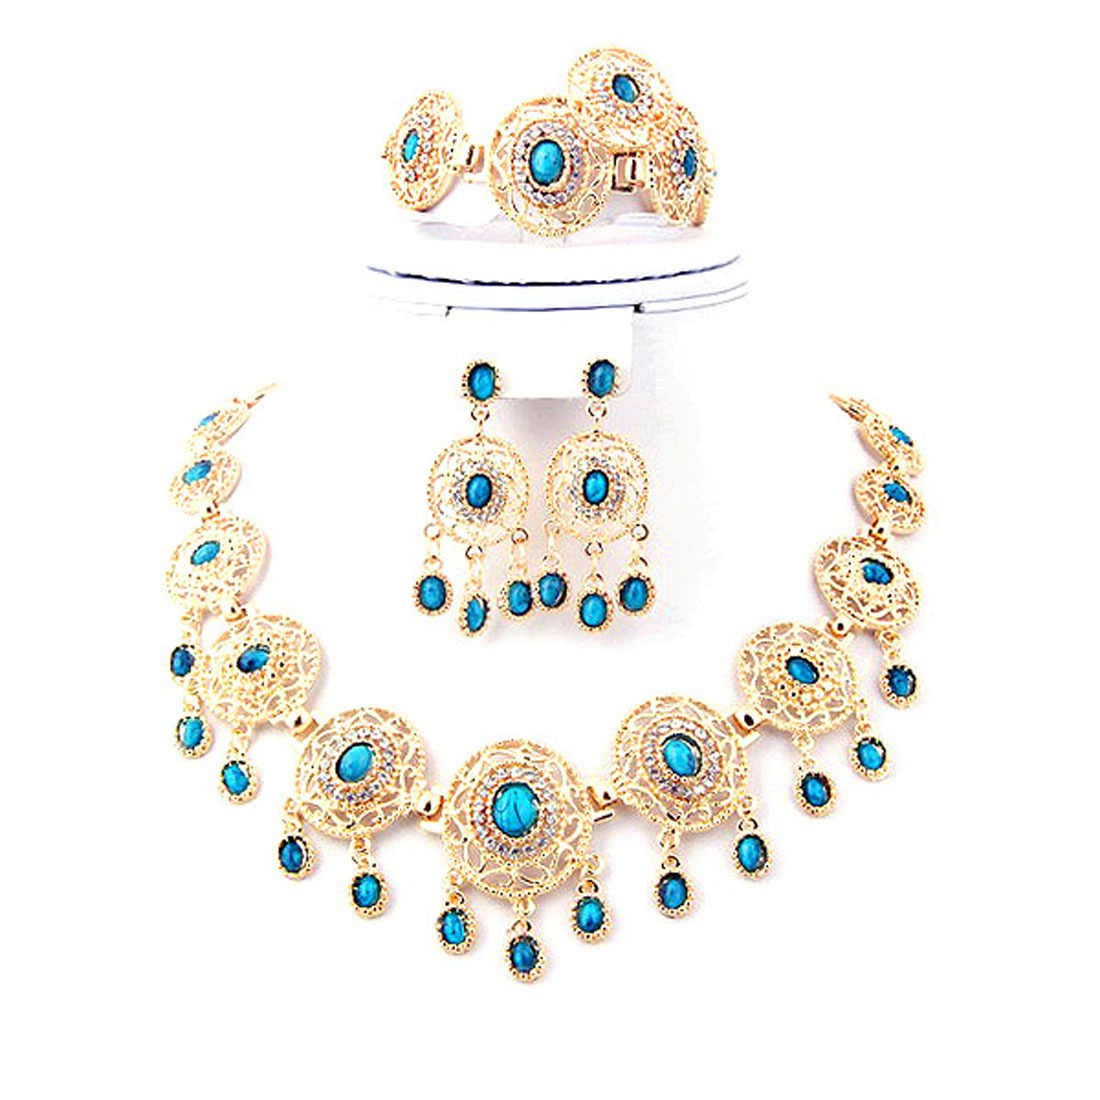 Hot Sale Ethnic Blue Stone Jewelry Sets with Solid Gold Plating Red and Black Rhinestone Necklace Earrings for Women